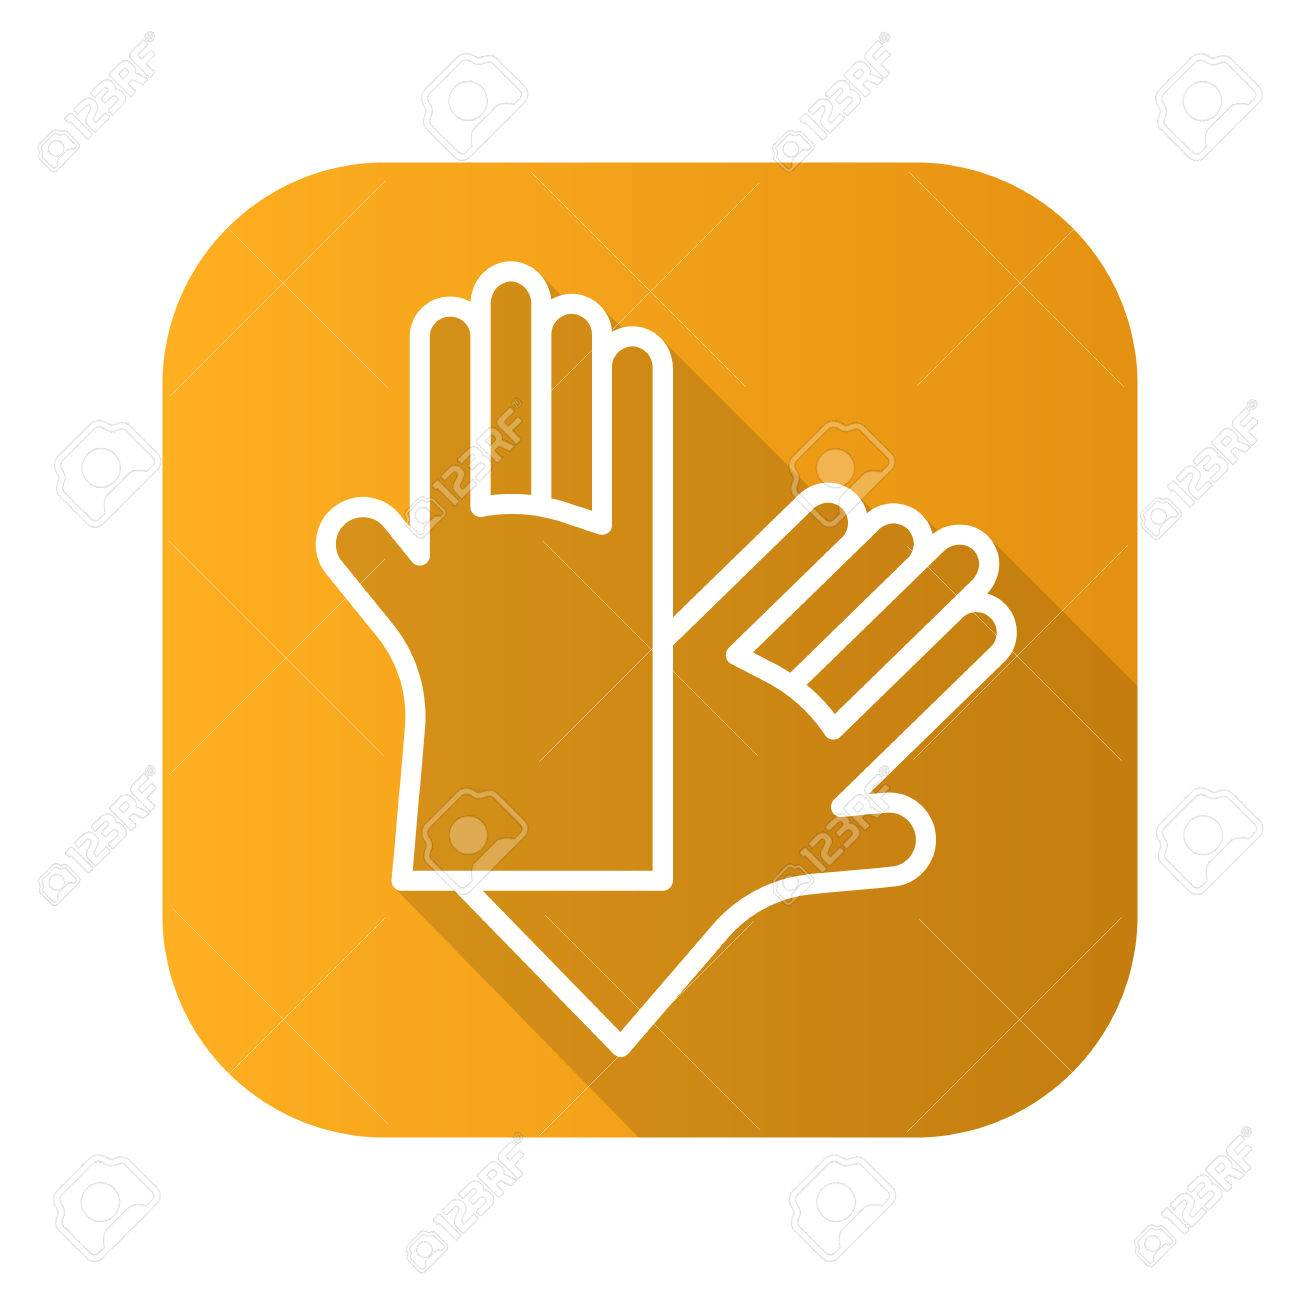 Latex Gloves Flat Linear Long Shadow Icon Vector Line Symbol